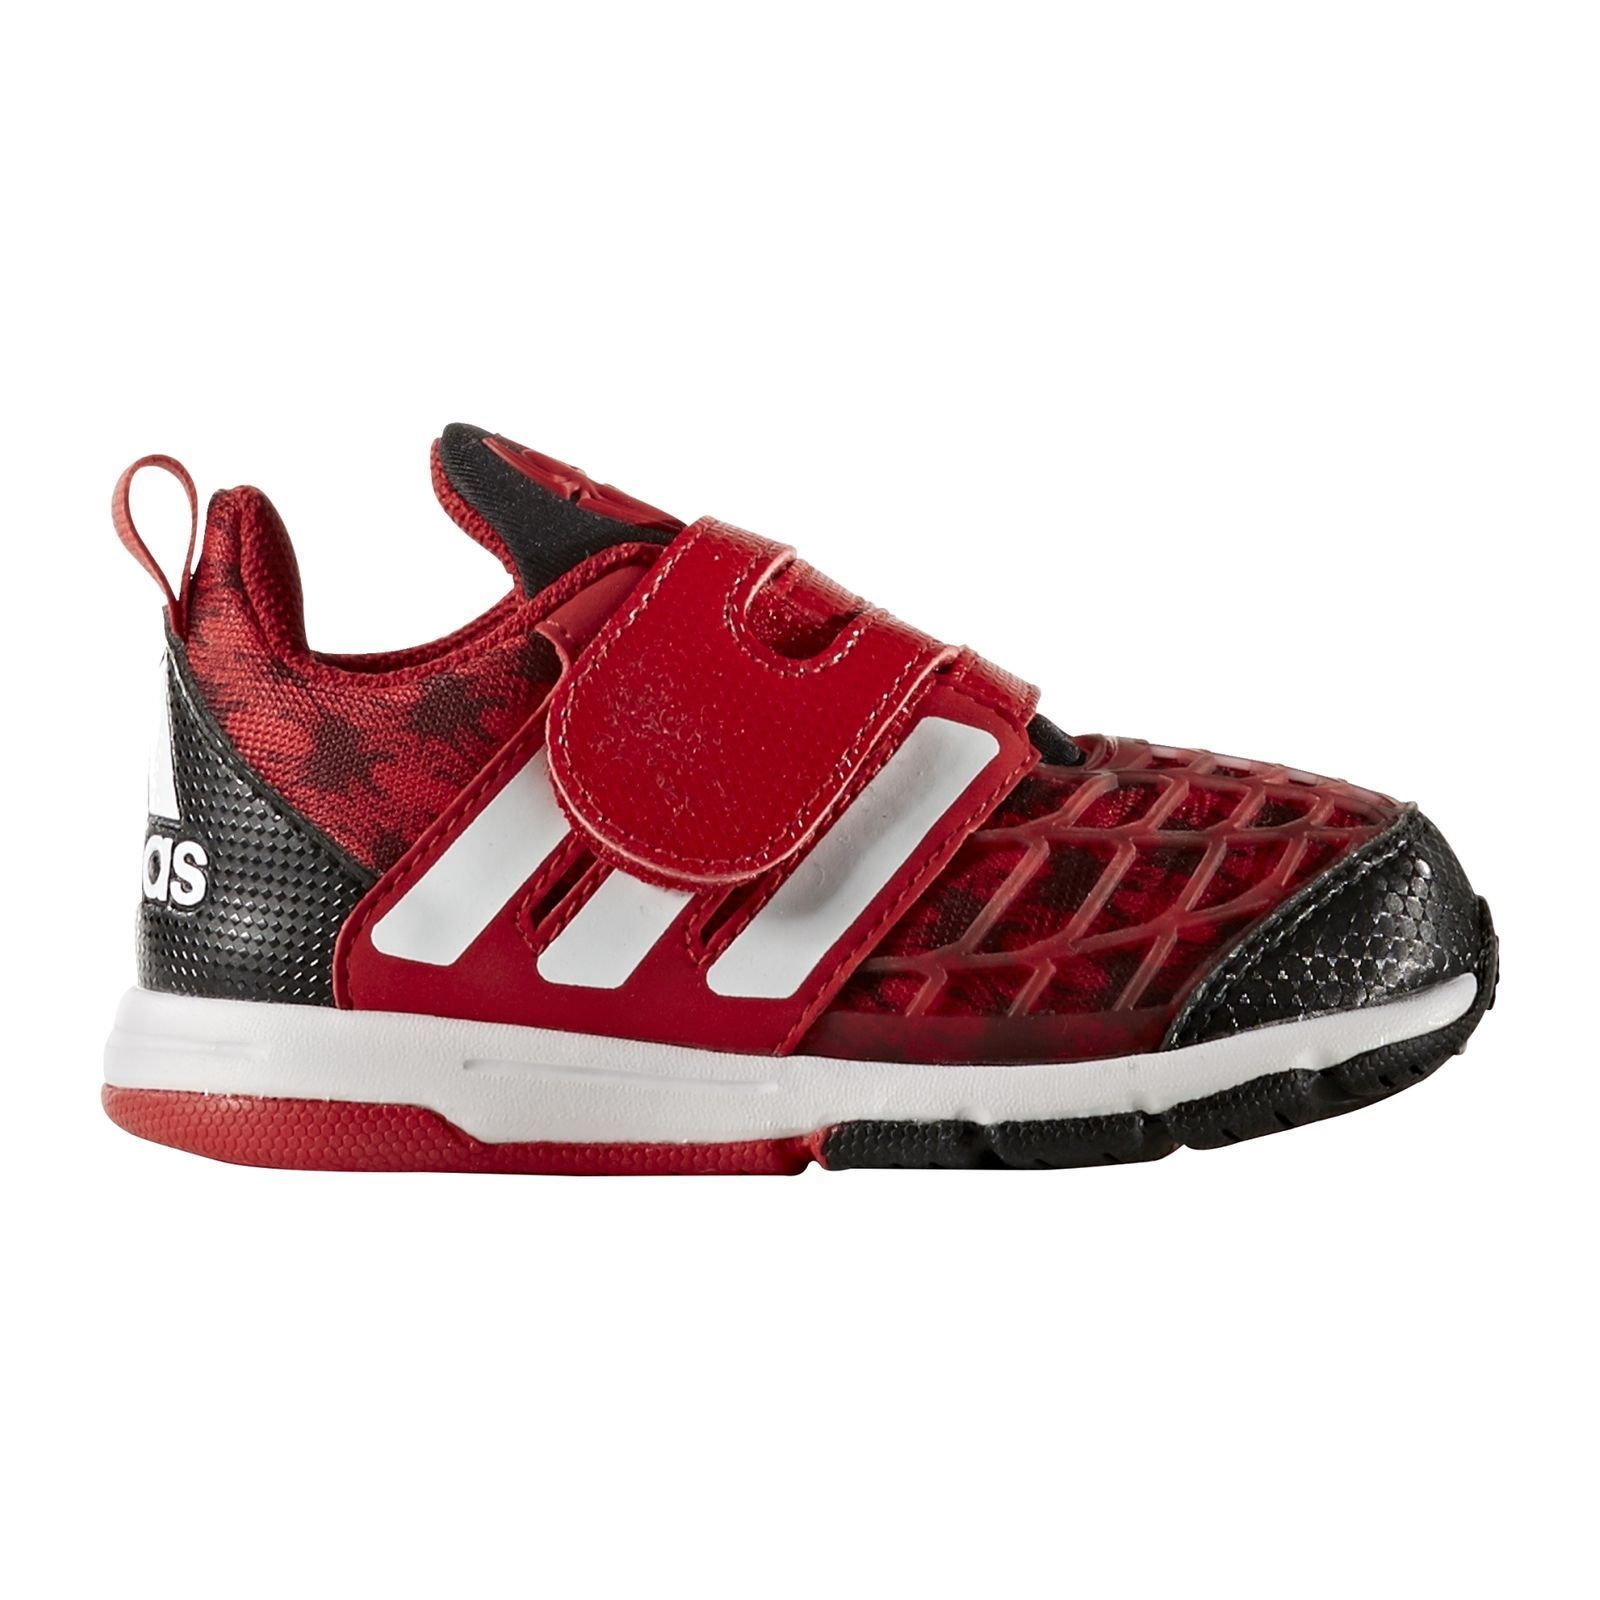 Adidas performance marvel spider man zapatillas rojo - Zapatillas casa marvel ...